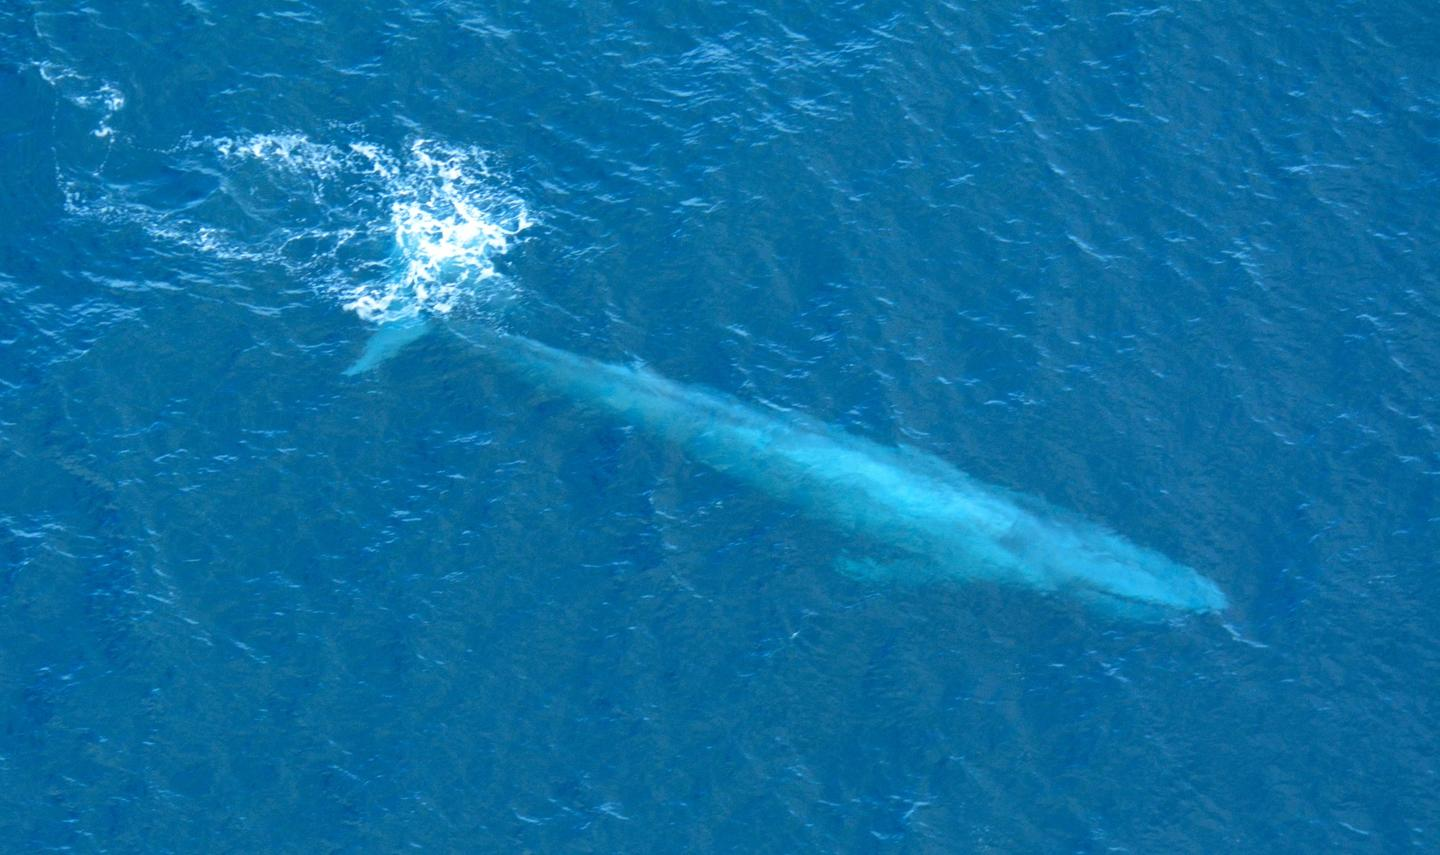 A blue whale in the waters of Southern California